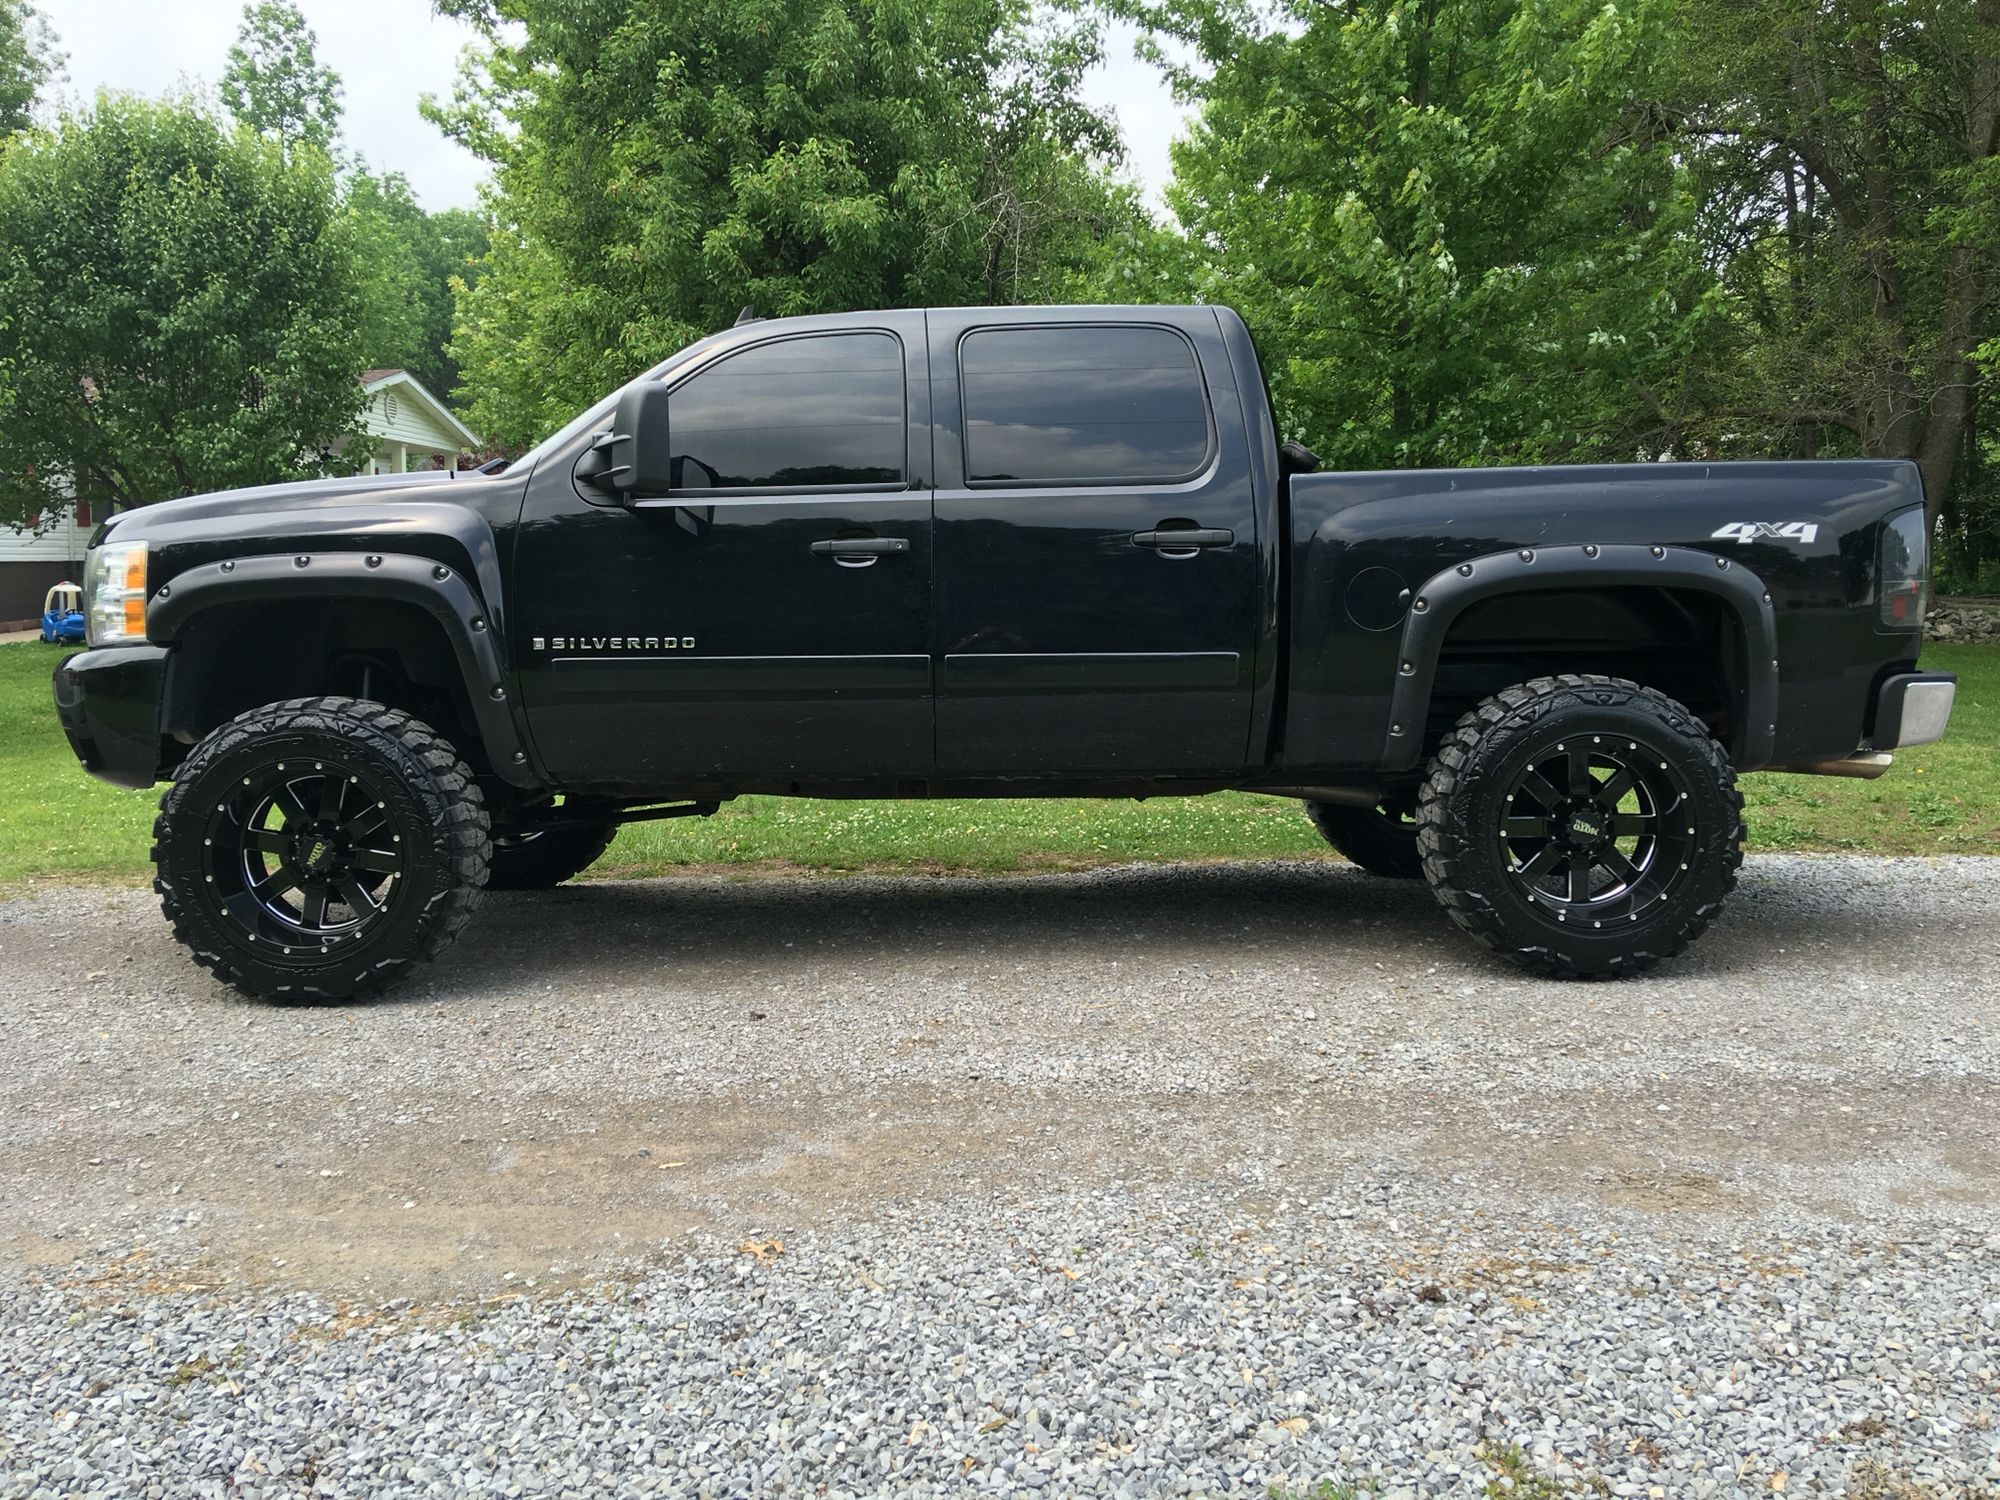 2008 Chevy Silverado Lifted >> 2008 Chevy Silverado 1500 6 Lift 35x12 50r20 Nitto Mud Grapplers